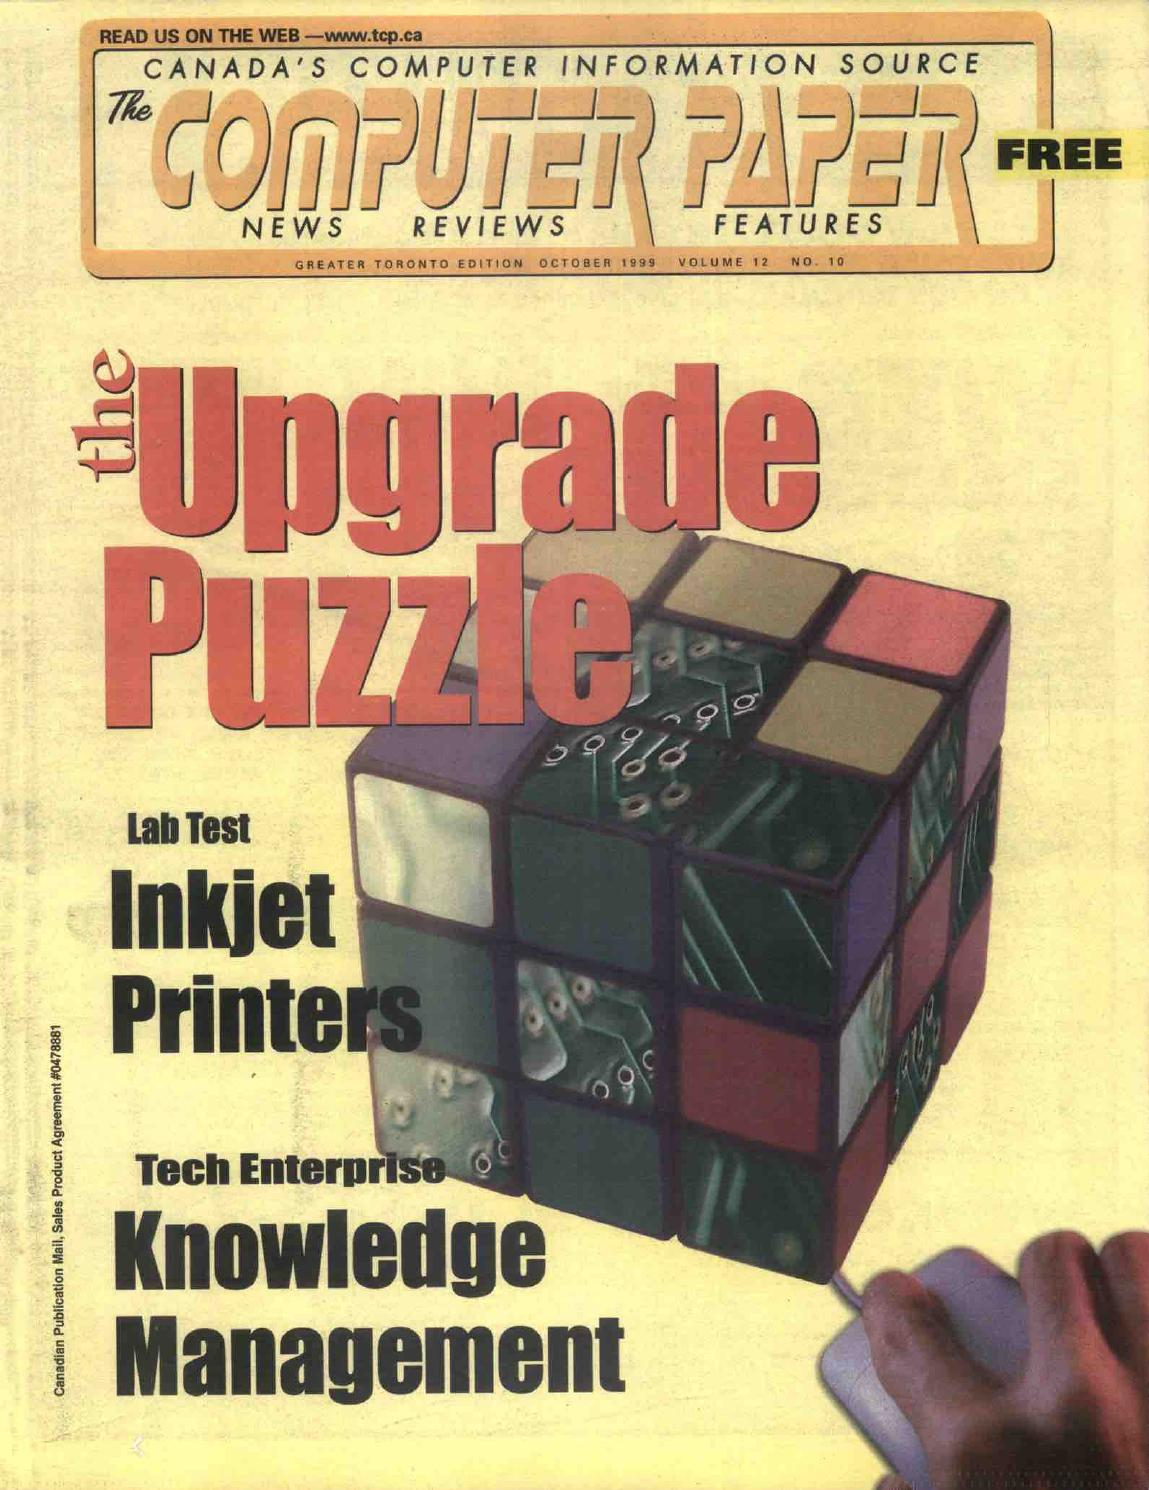 1999 10 the computer paper ontario edition by the computer paper 1999 10 the computer paper ontario edition by the computer paper issuu fandeluxe Images